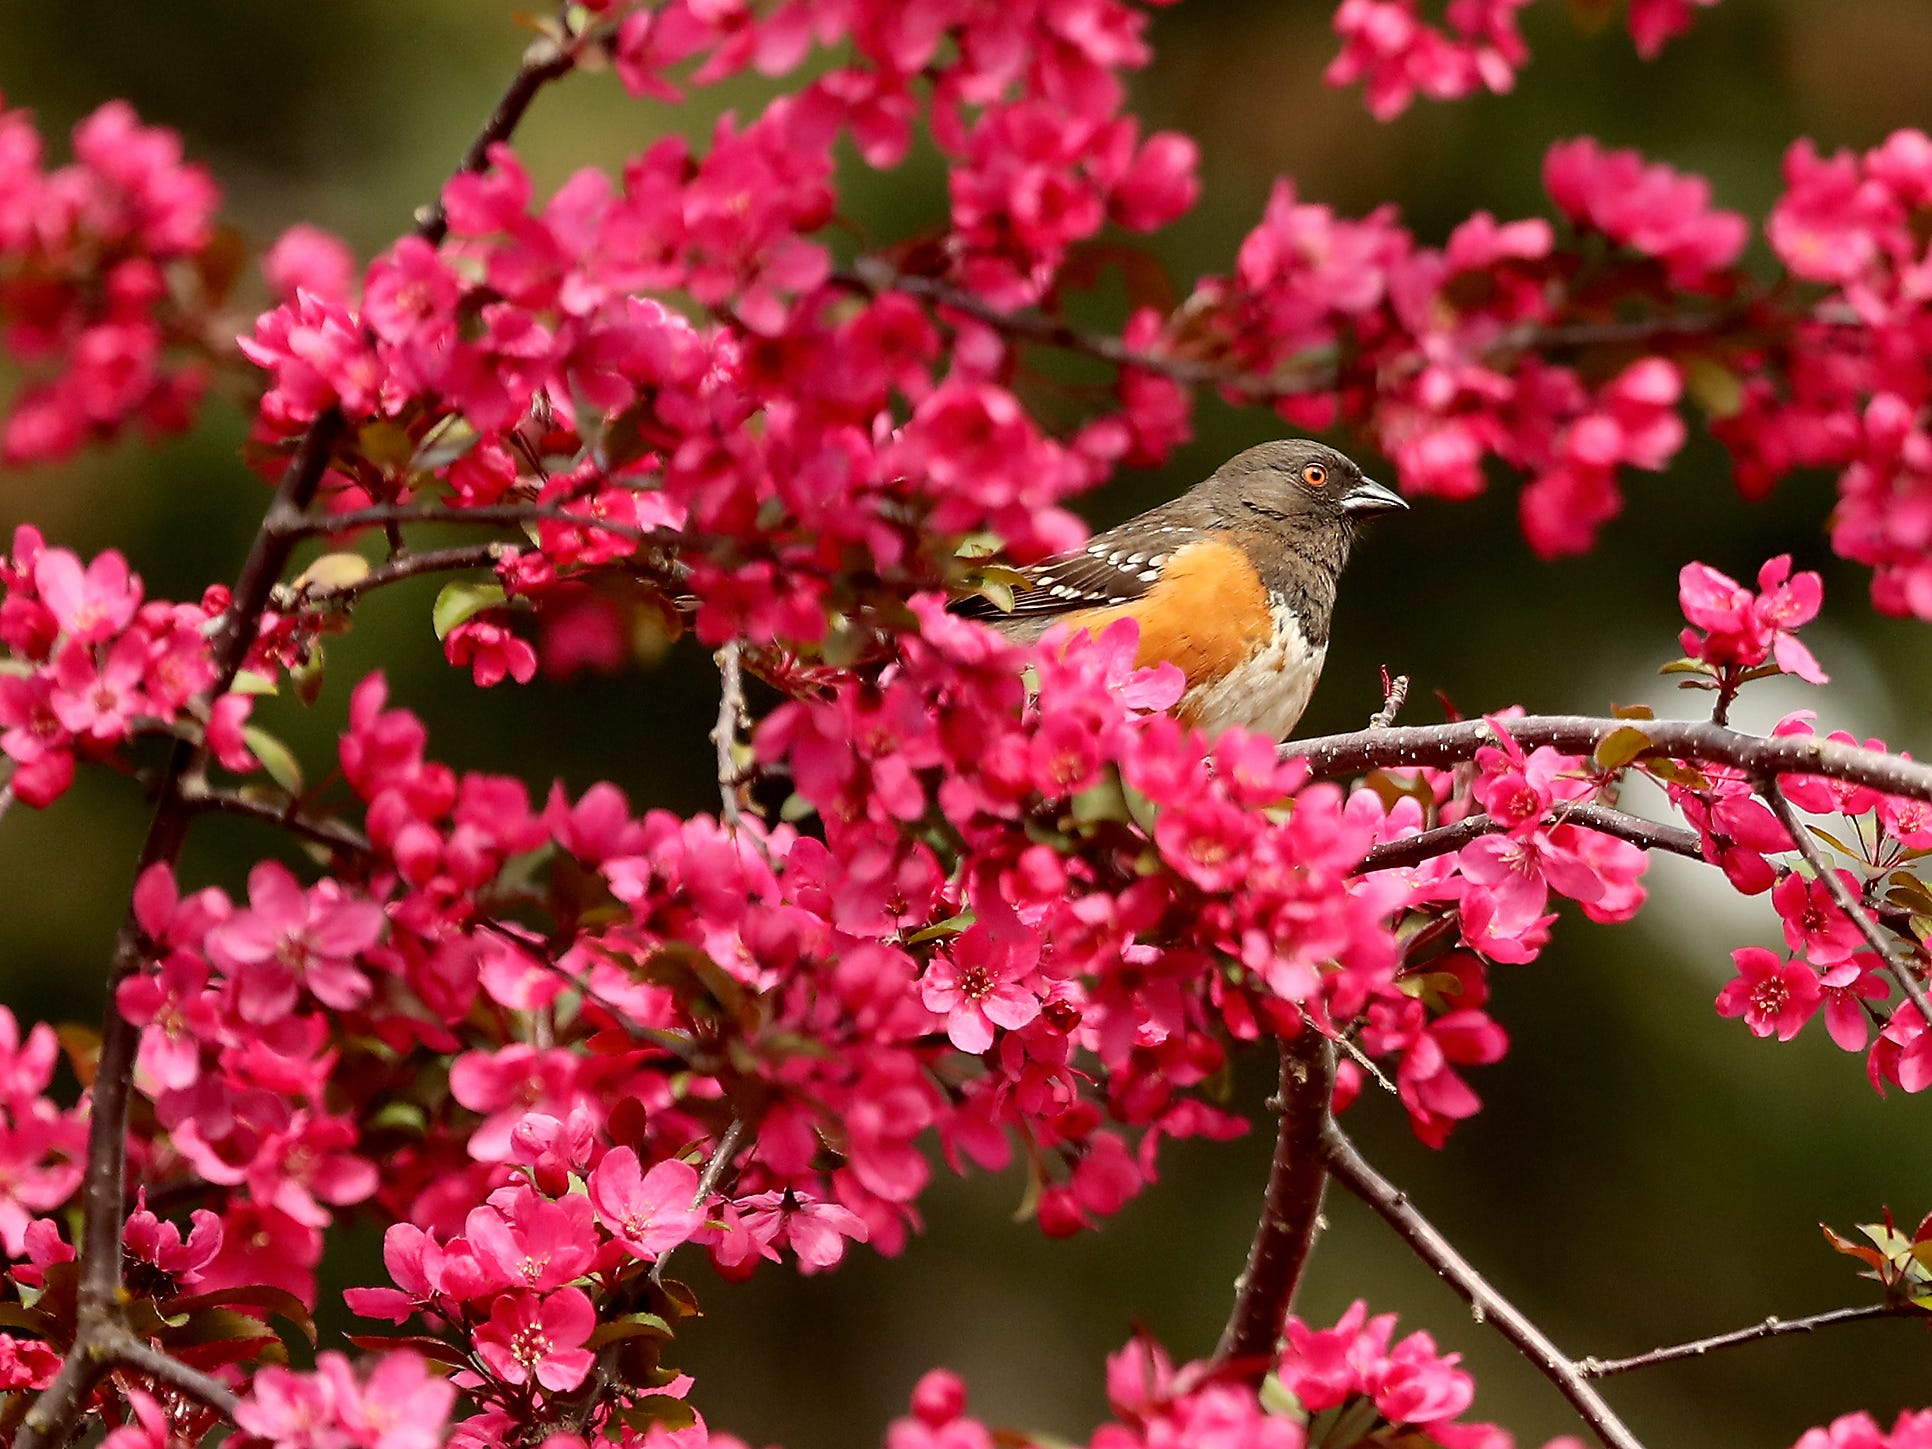 A spotted towhee is framed by the blossoms of a tree in Bremerton's Lent Landing Park on Tuesday, April 23, 2019.